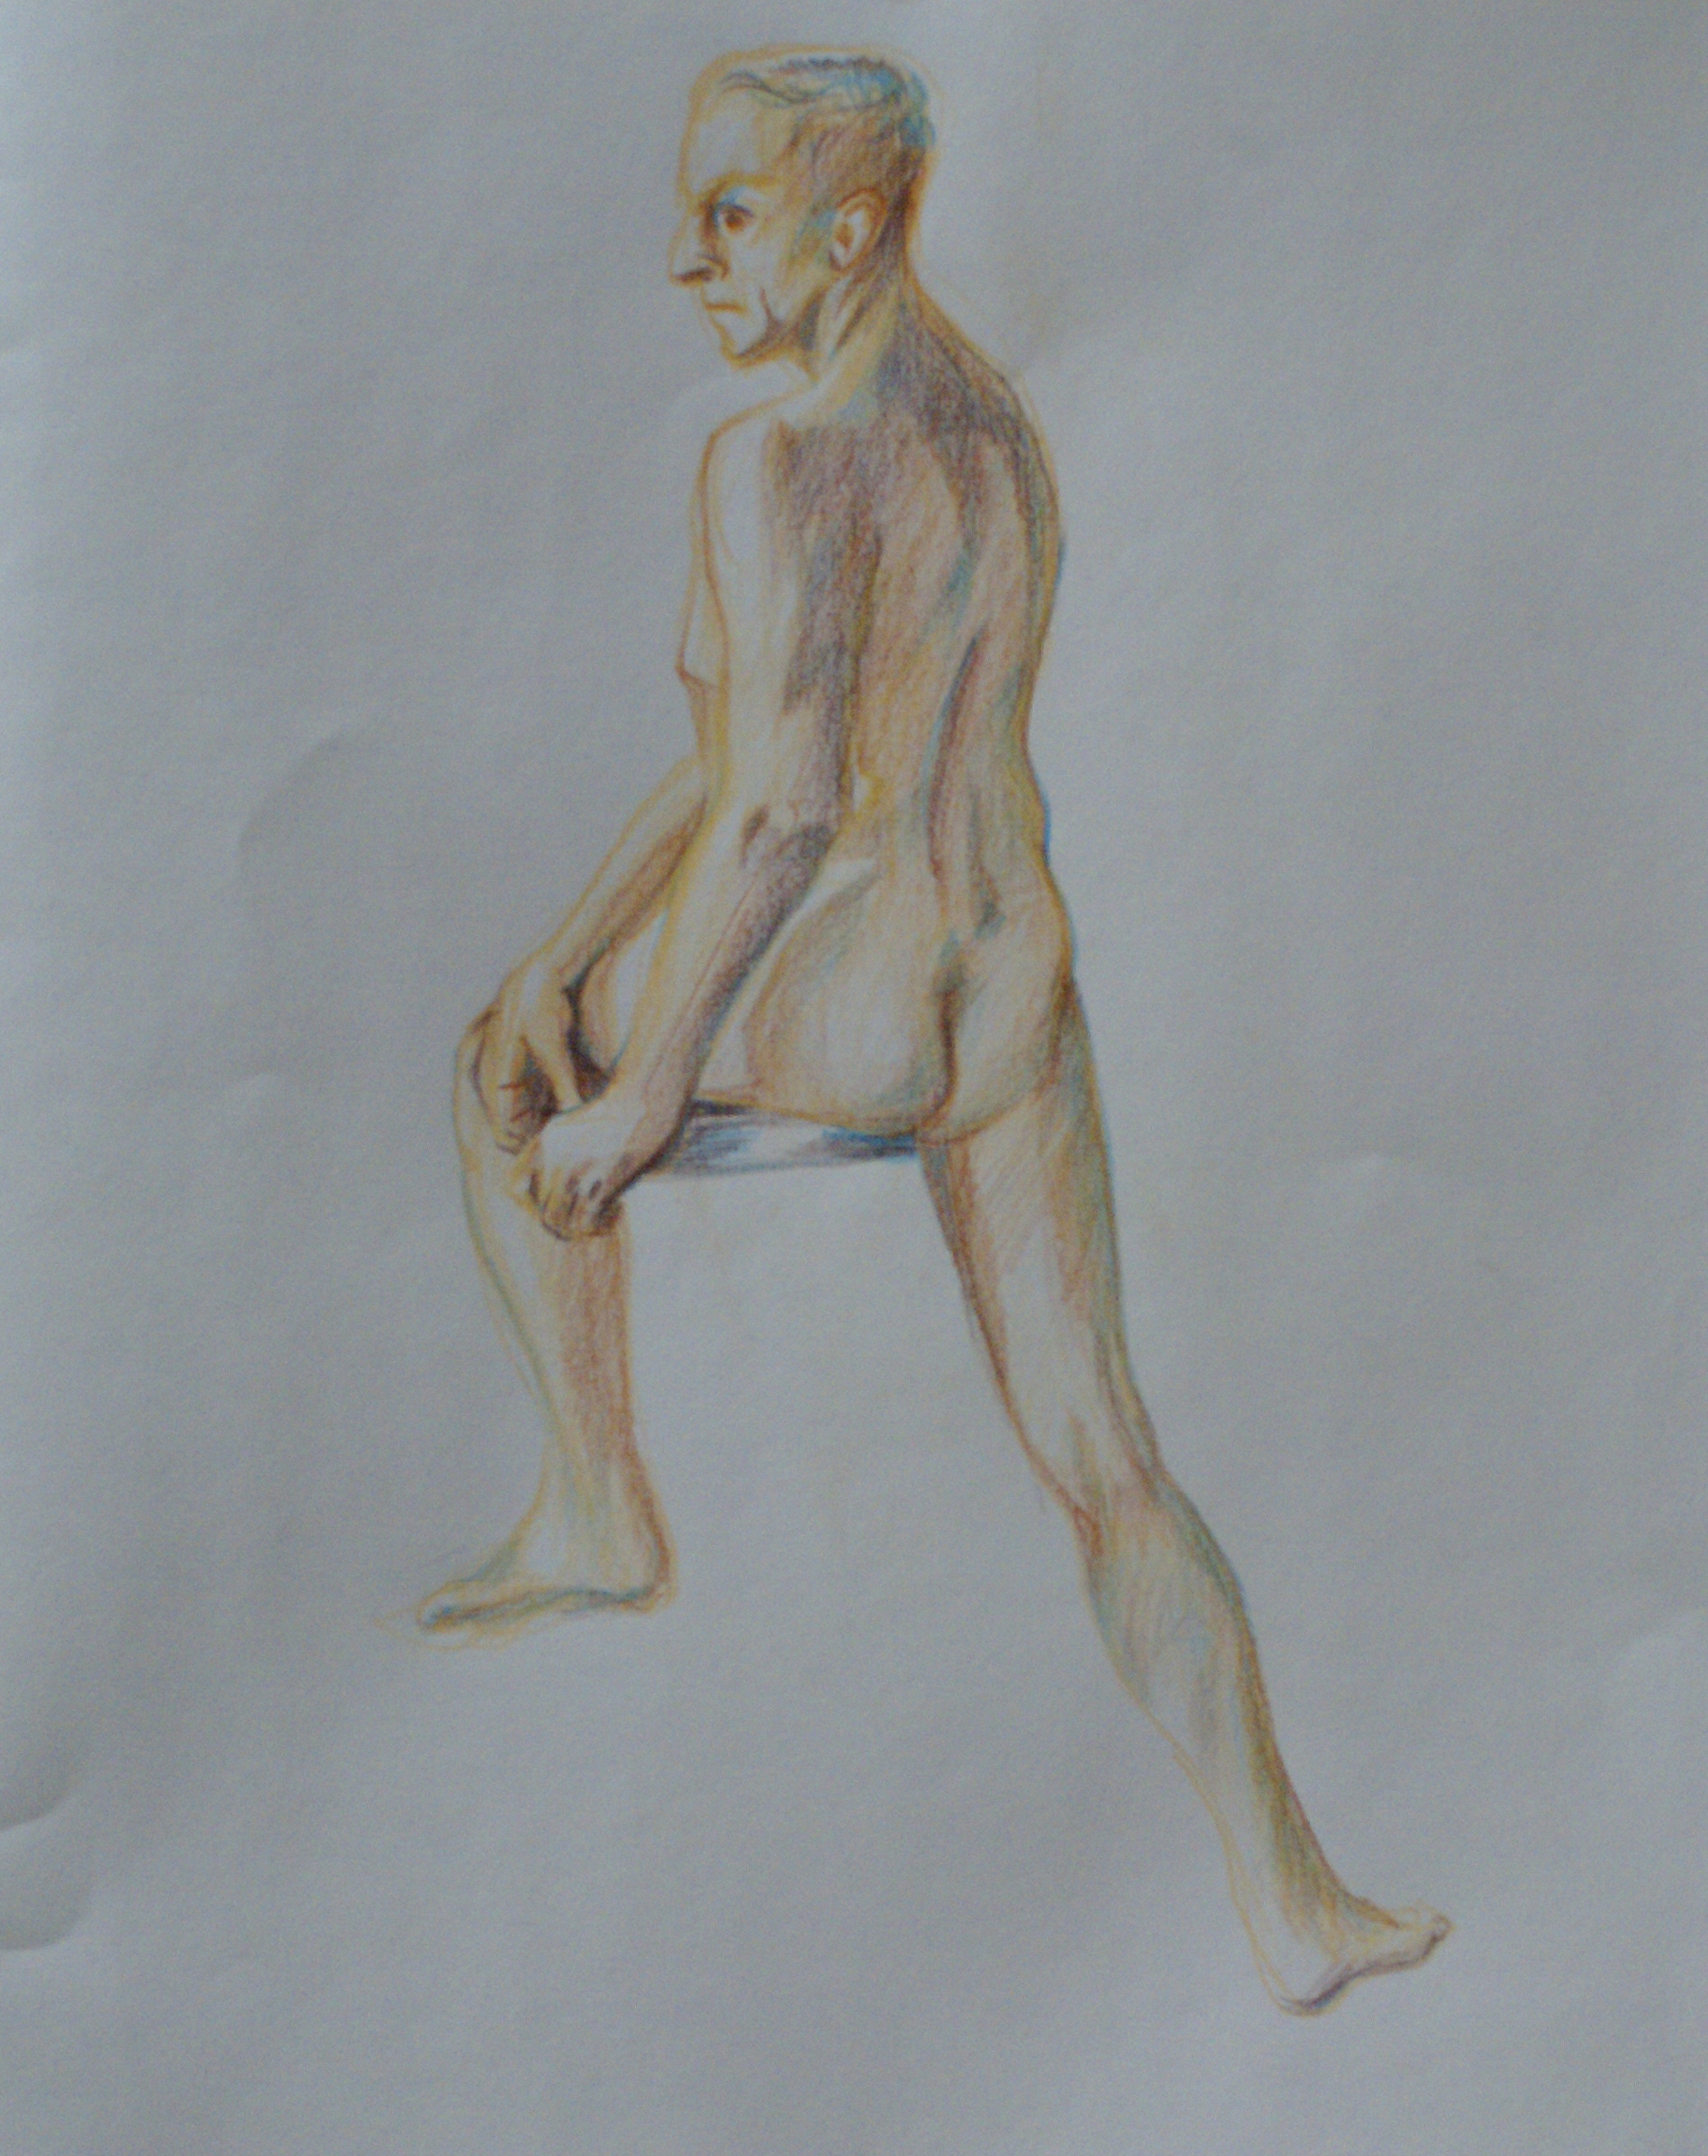 Orlando Rodriguez. Anatomy and Figure Drawing II. Charcoal and color pencil on toned paper. 18 x 24 in.